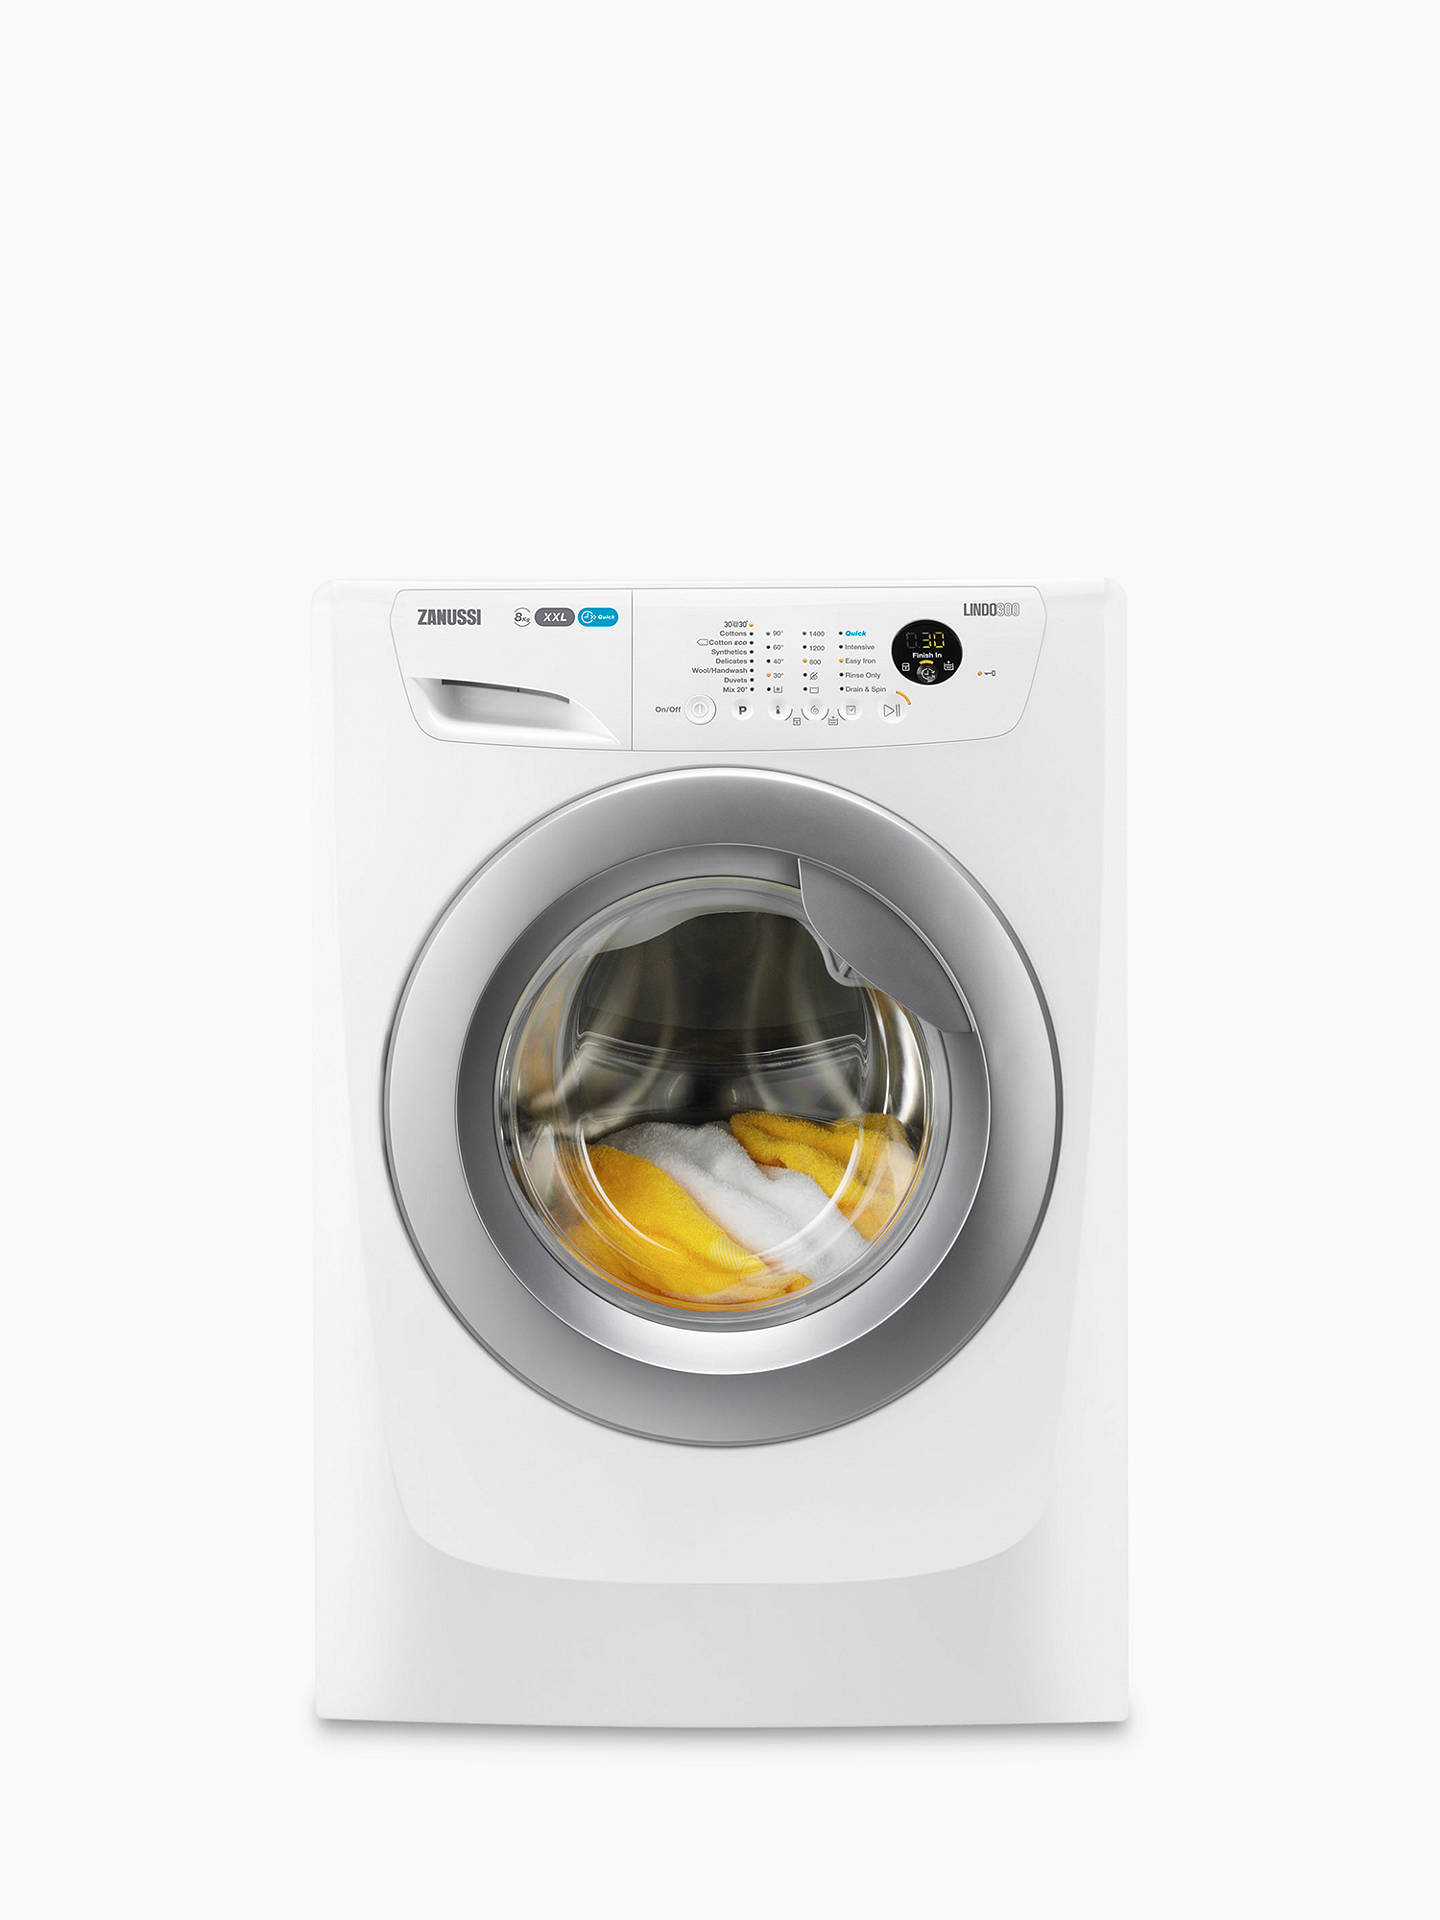 Best Price On Robertson Premier Suites By Subhome In Kuala: Zanussi ZWF81463WR Freestanding Washing Machine, 8kg Load